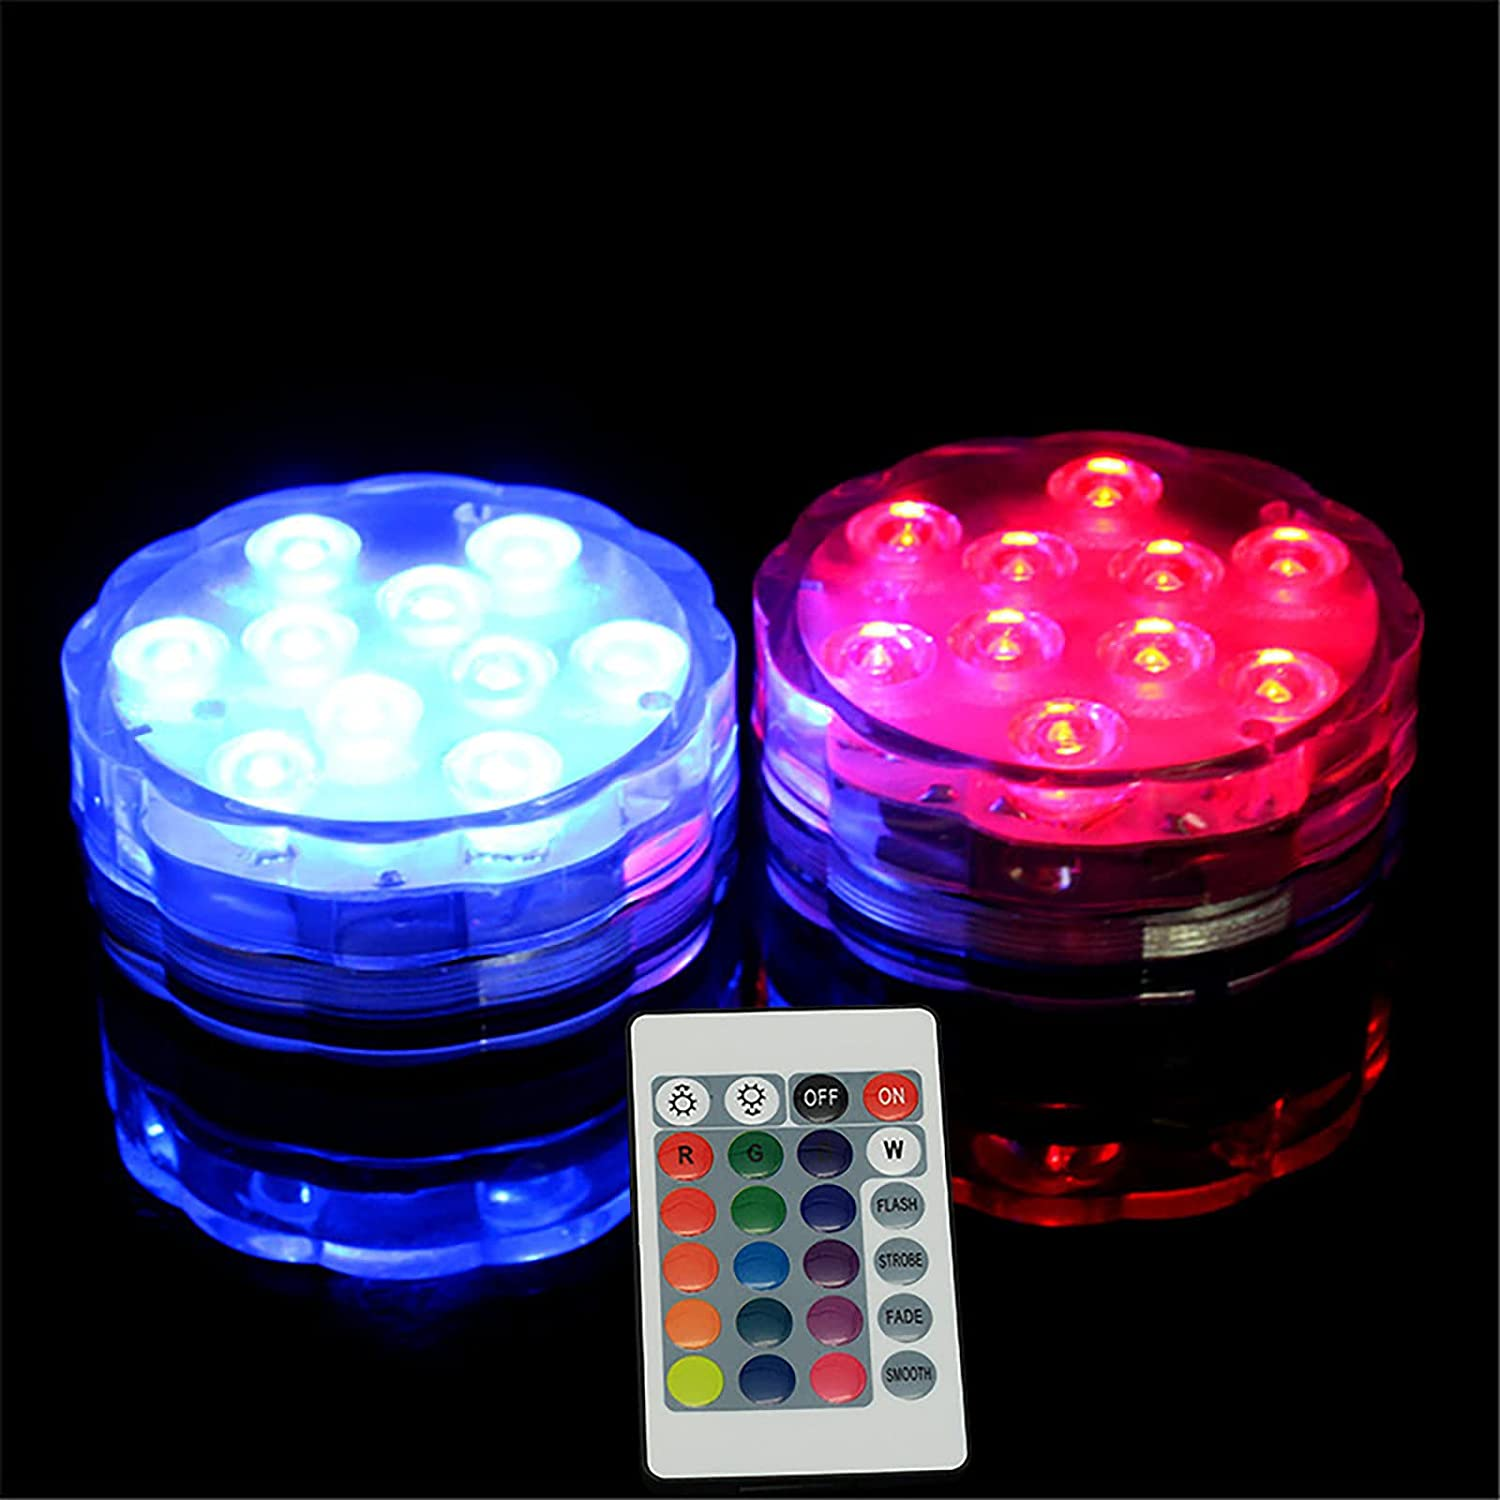 4 Pack Pool Lights outlet for Inground L Remote 55% OFF Control Waterproof